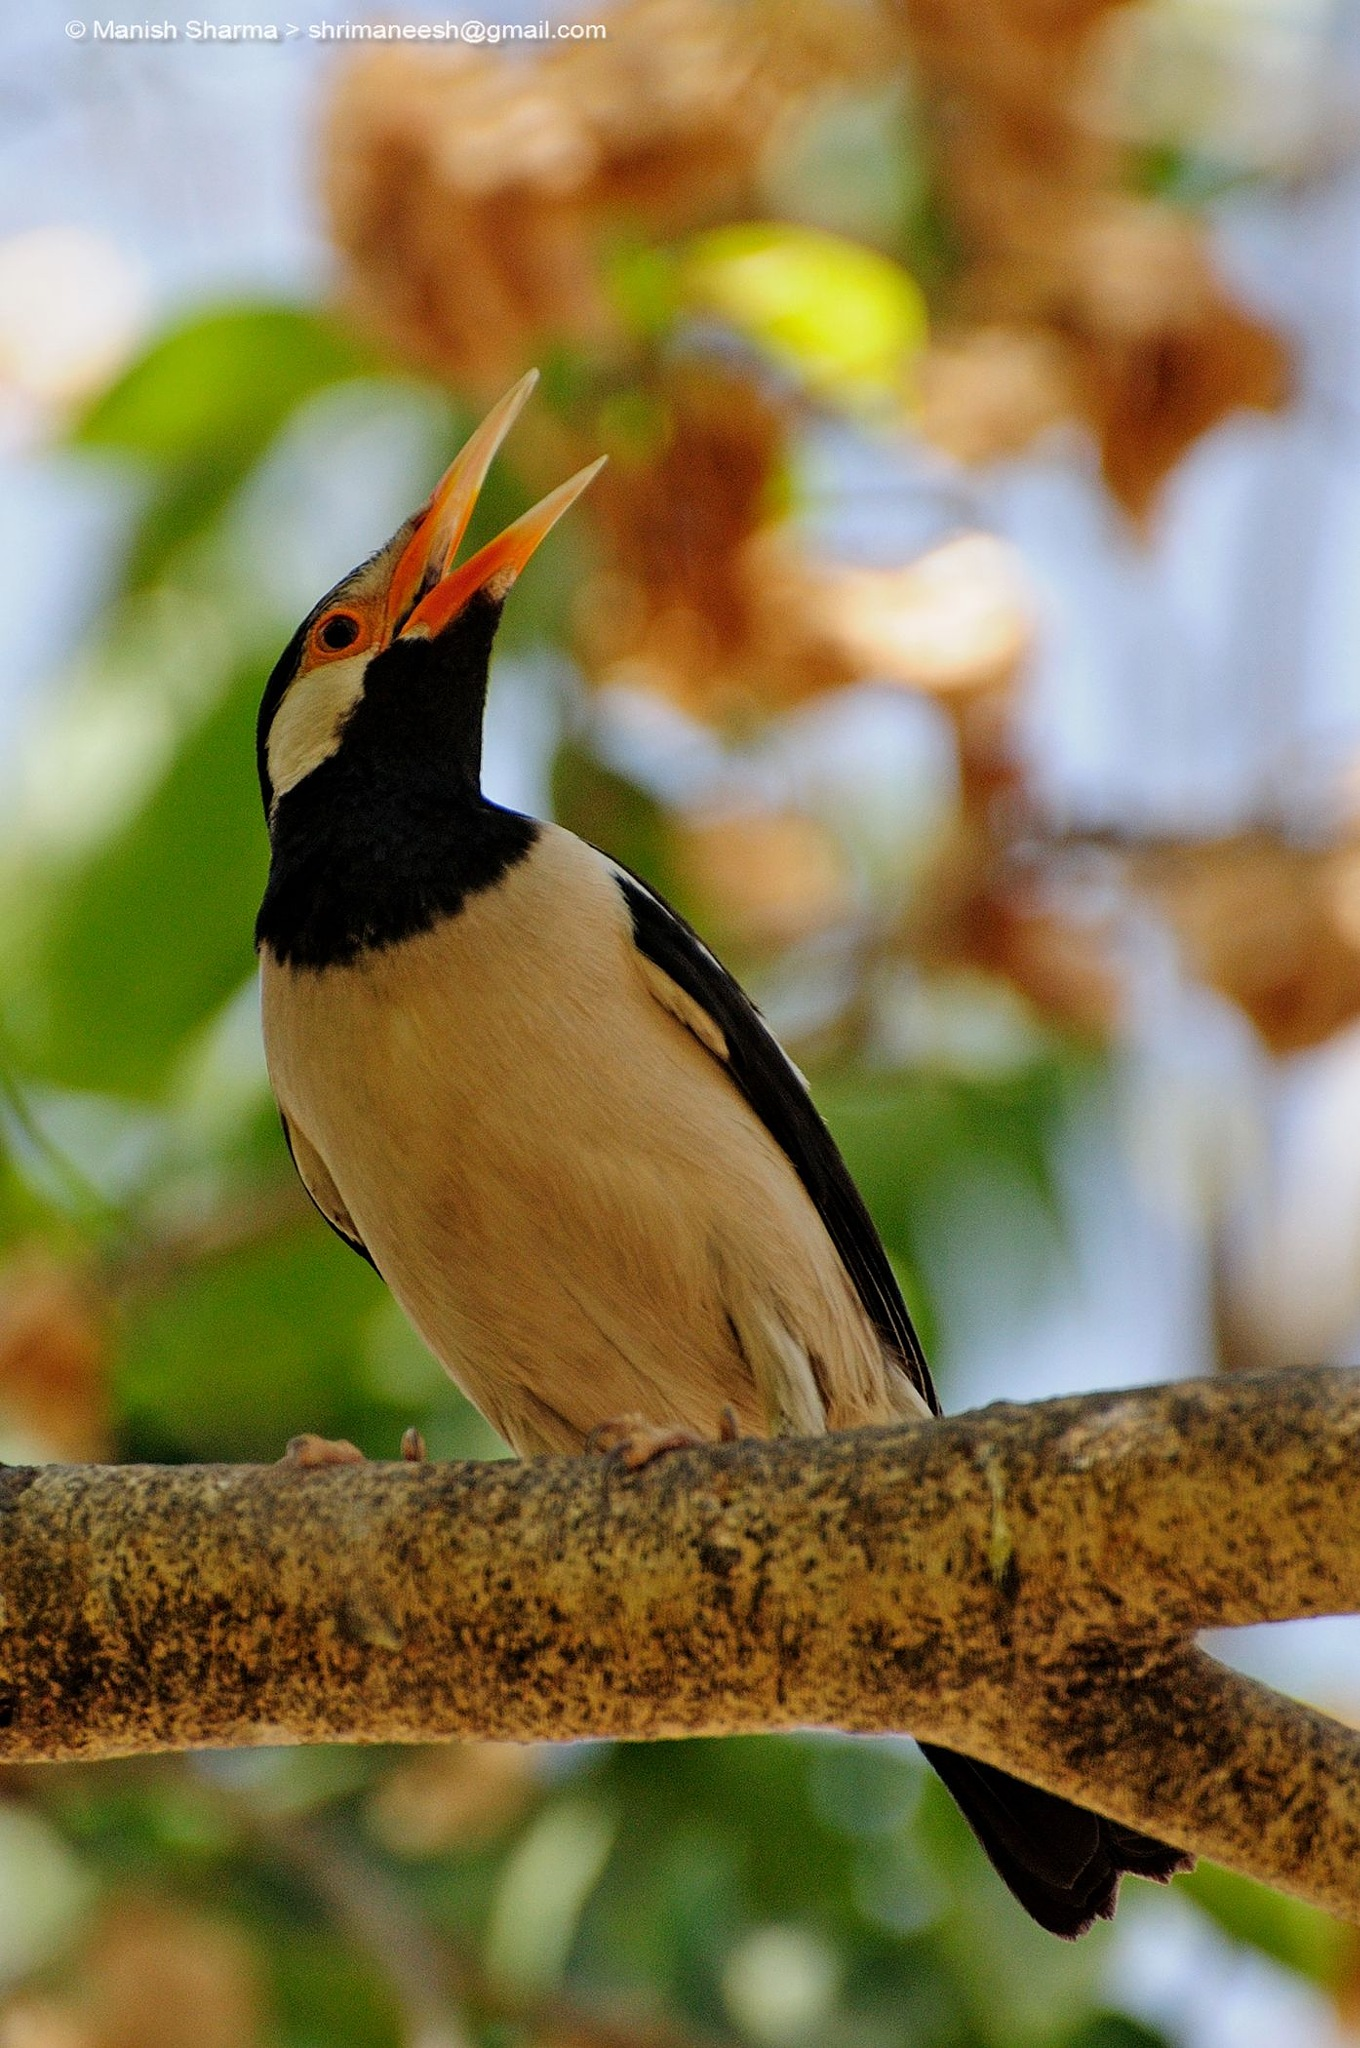 Pied myna or Asian pied starling...Scientific name: Gracupica contra by Maneesh Sharma